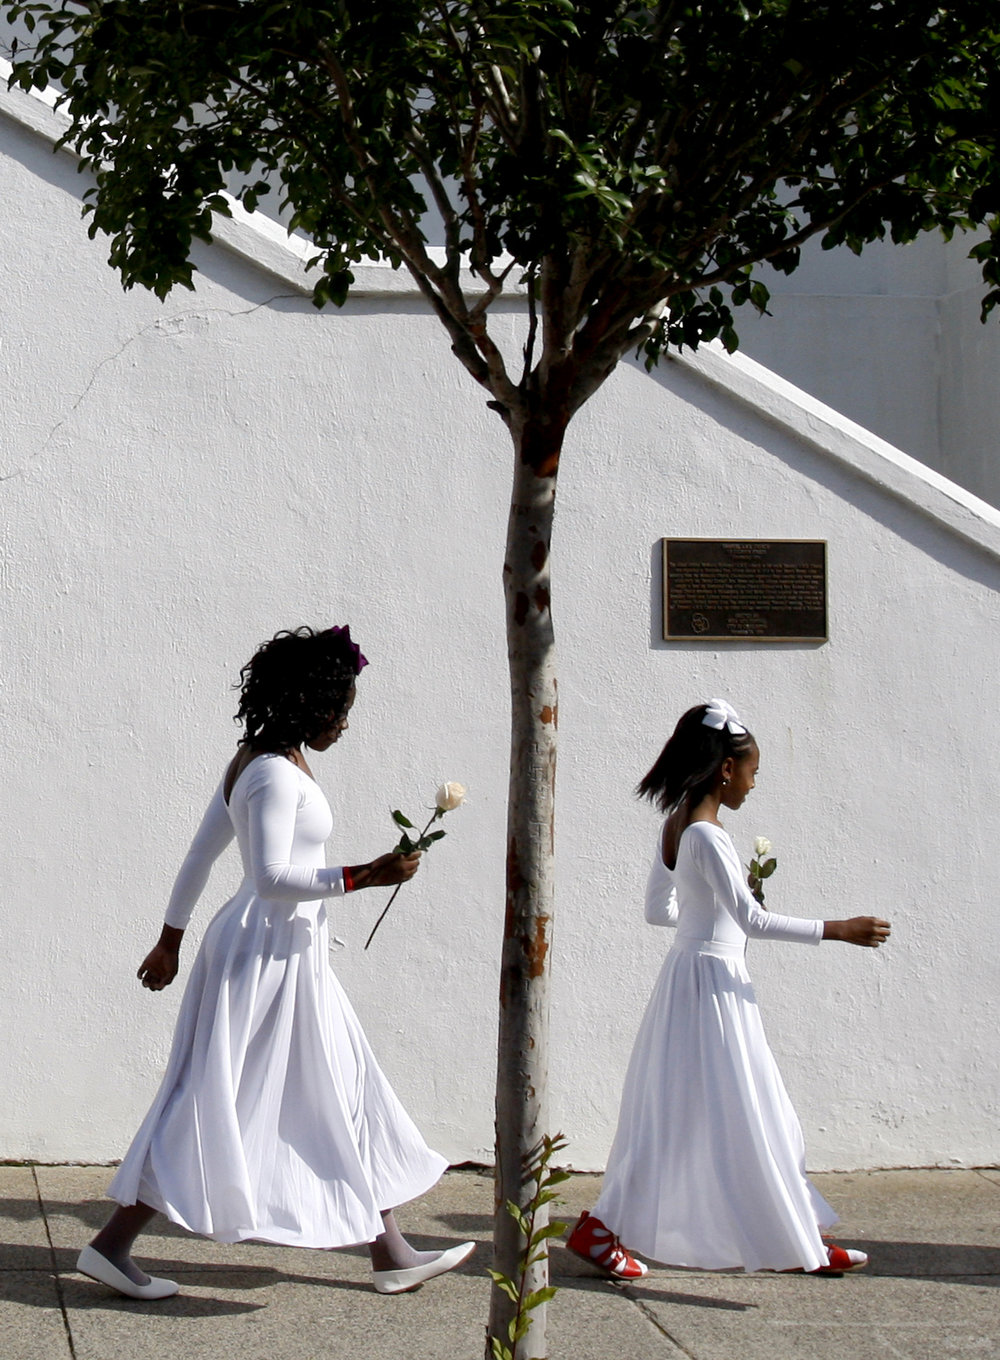 Tyla A. Johnson, left, part of the praise dancer group of the Mother Emanuel AME Church, and Jaelyn Nelson, right, walk towards the steps of the church during the Hate Won't Win Unity Walk in Charleston on Saturday, June 17, 2017, the two-year anniversary of the Mother Emanuel Church shooting. Johnson is the niece of the late Myra Thompson. Nelson is the cousin of the late Tywanza Sanders and the great niece of the late Susie Jackson, who were killed in the shooting.